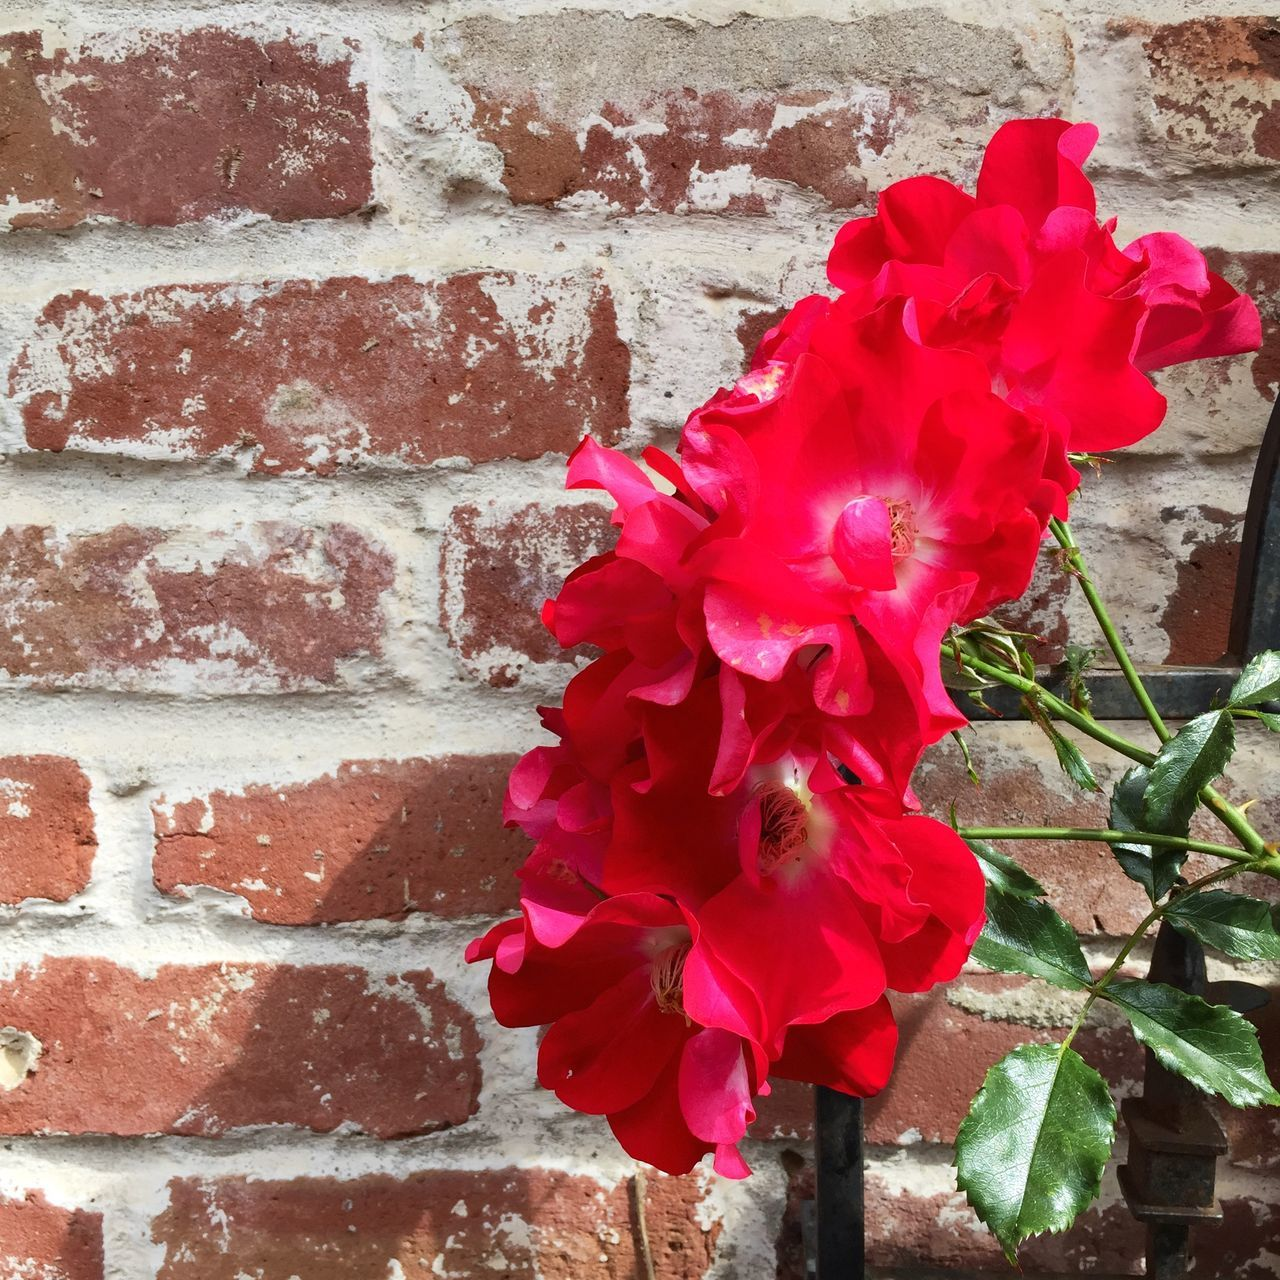 Roses Red Roses Heirloom Roses Brick Wall Red Flowers